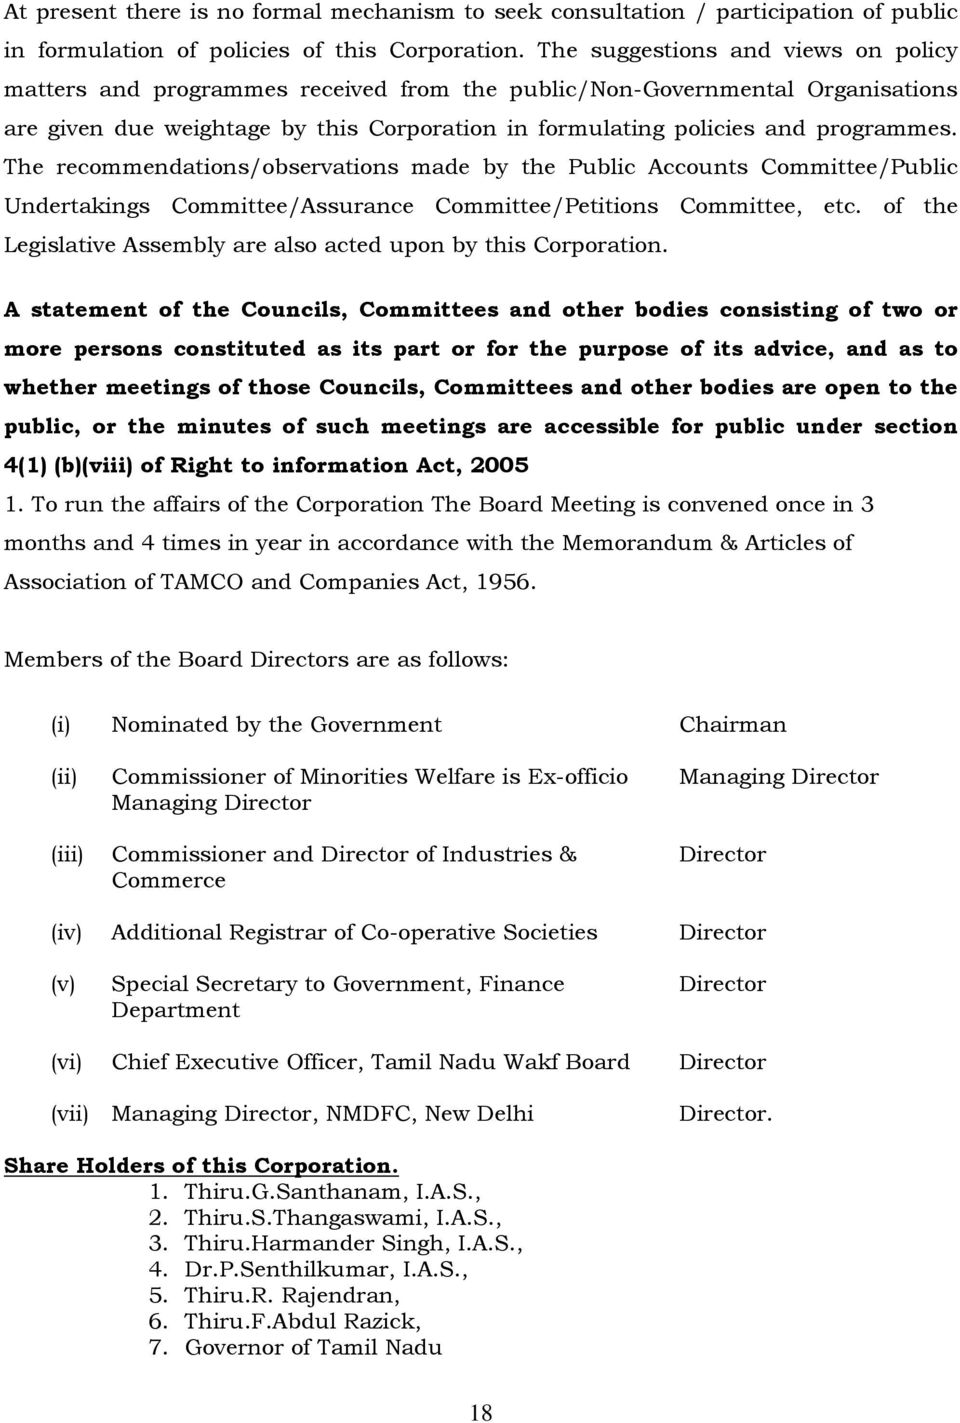 The recommendations/observations made by the Public Accounts Committee/Public Undertakings Committee/Assurance Committee/Petitions Committee, etc.